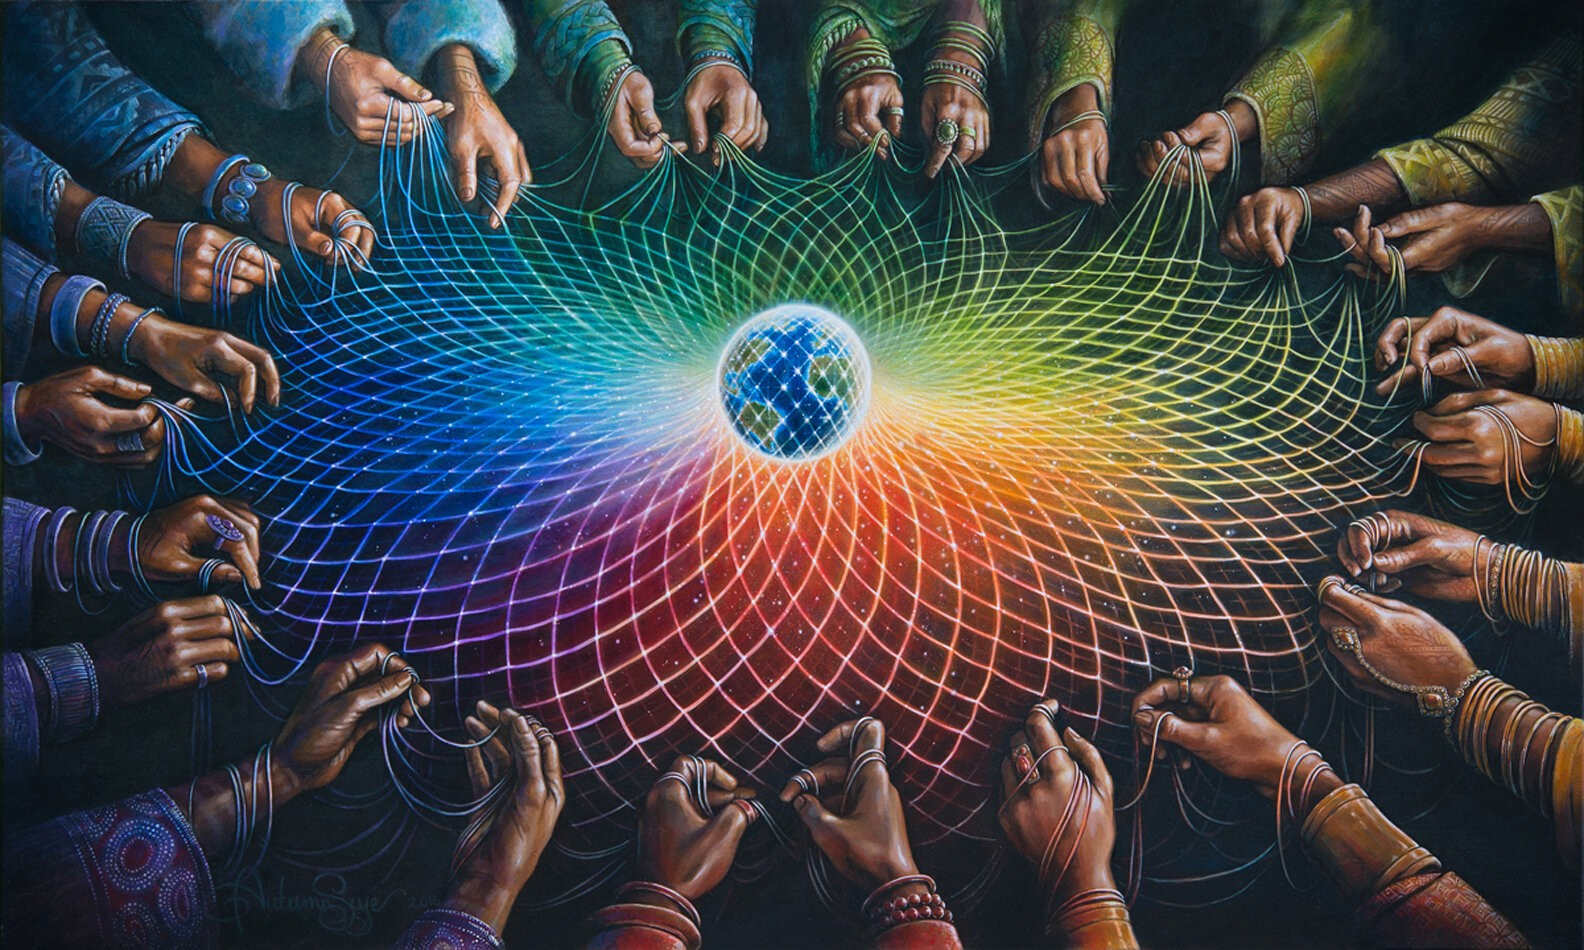 Gathering The Priest-Esses of Love - A Global Healing Ceremony